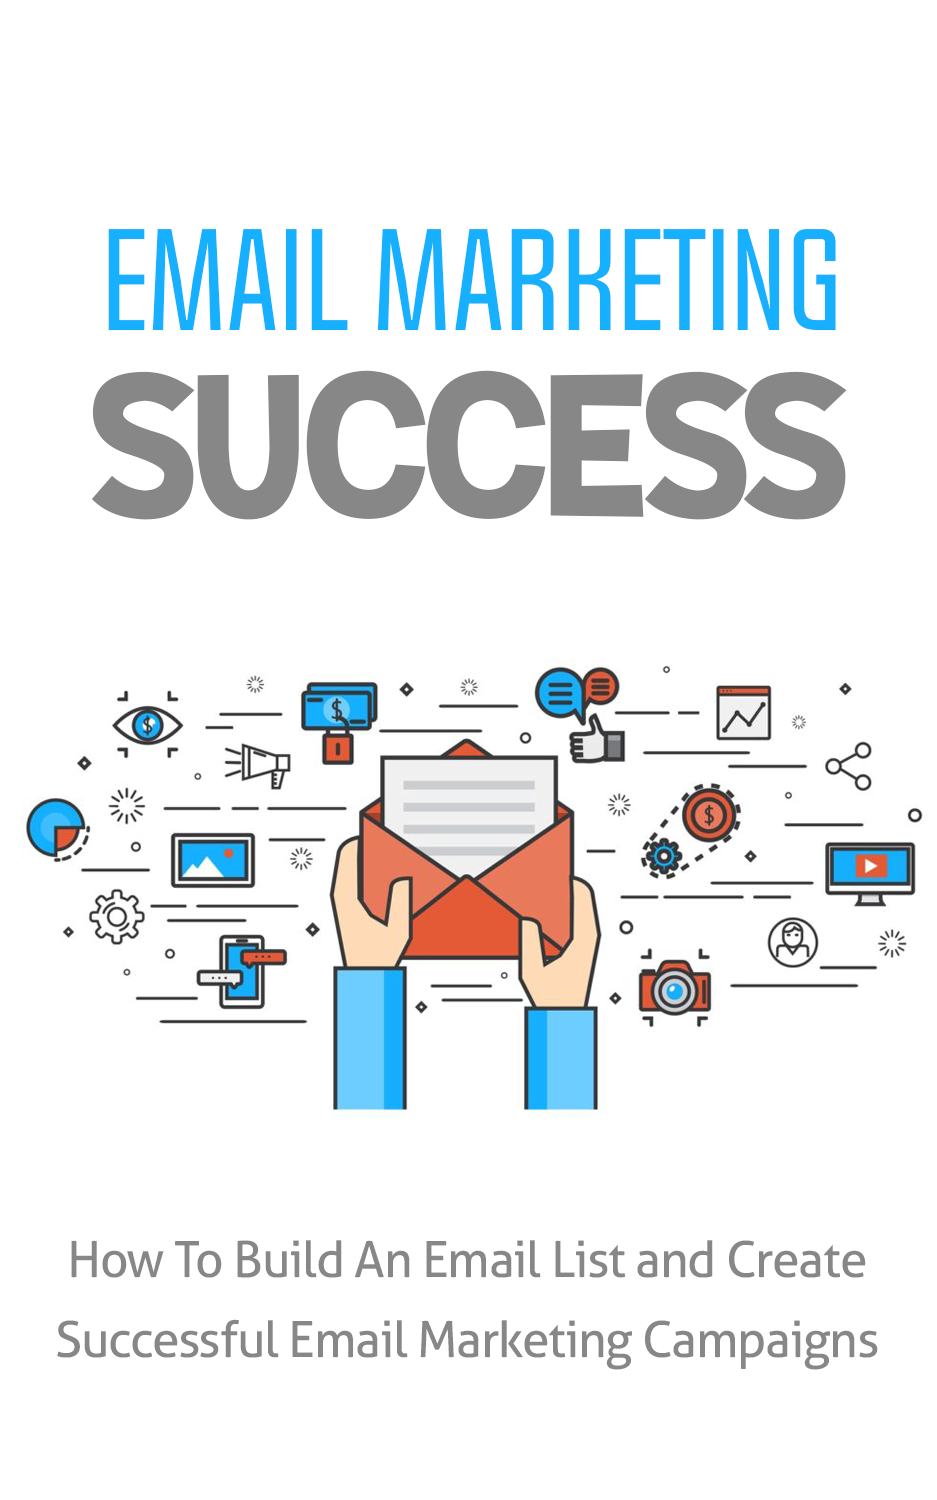 Email Marketing Success (How To Build An Email List And Create Successful Email Marketing Campaigns) Ebook's Ebook Image